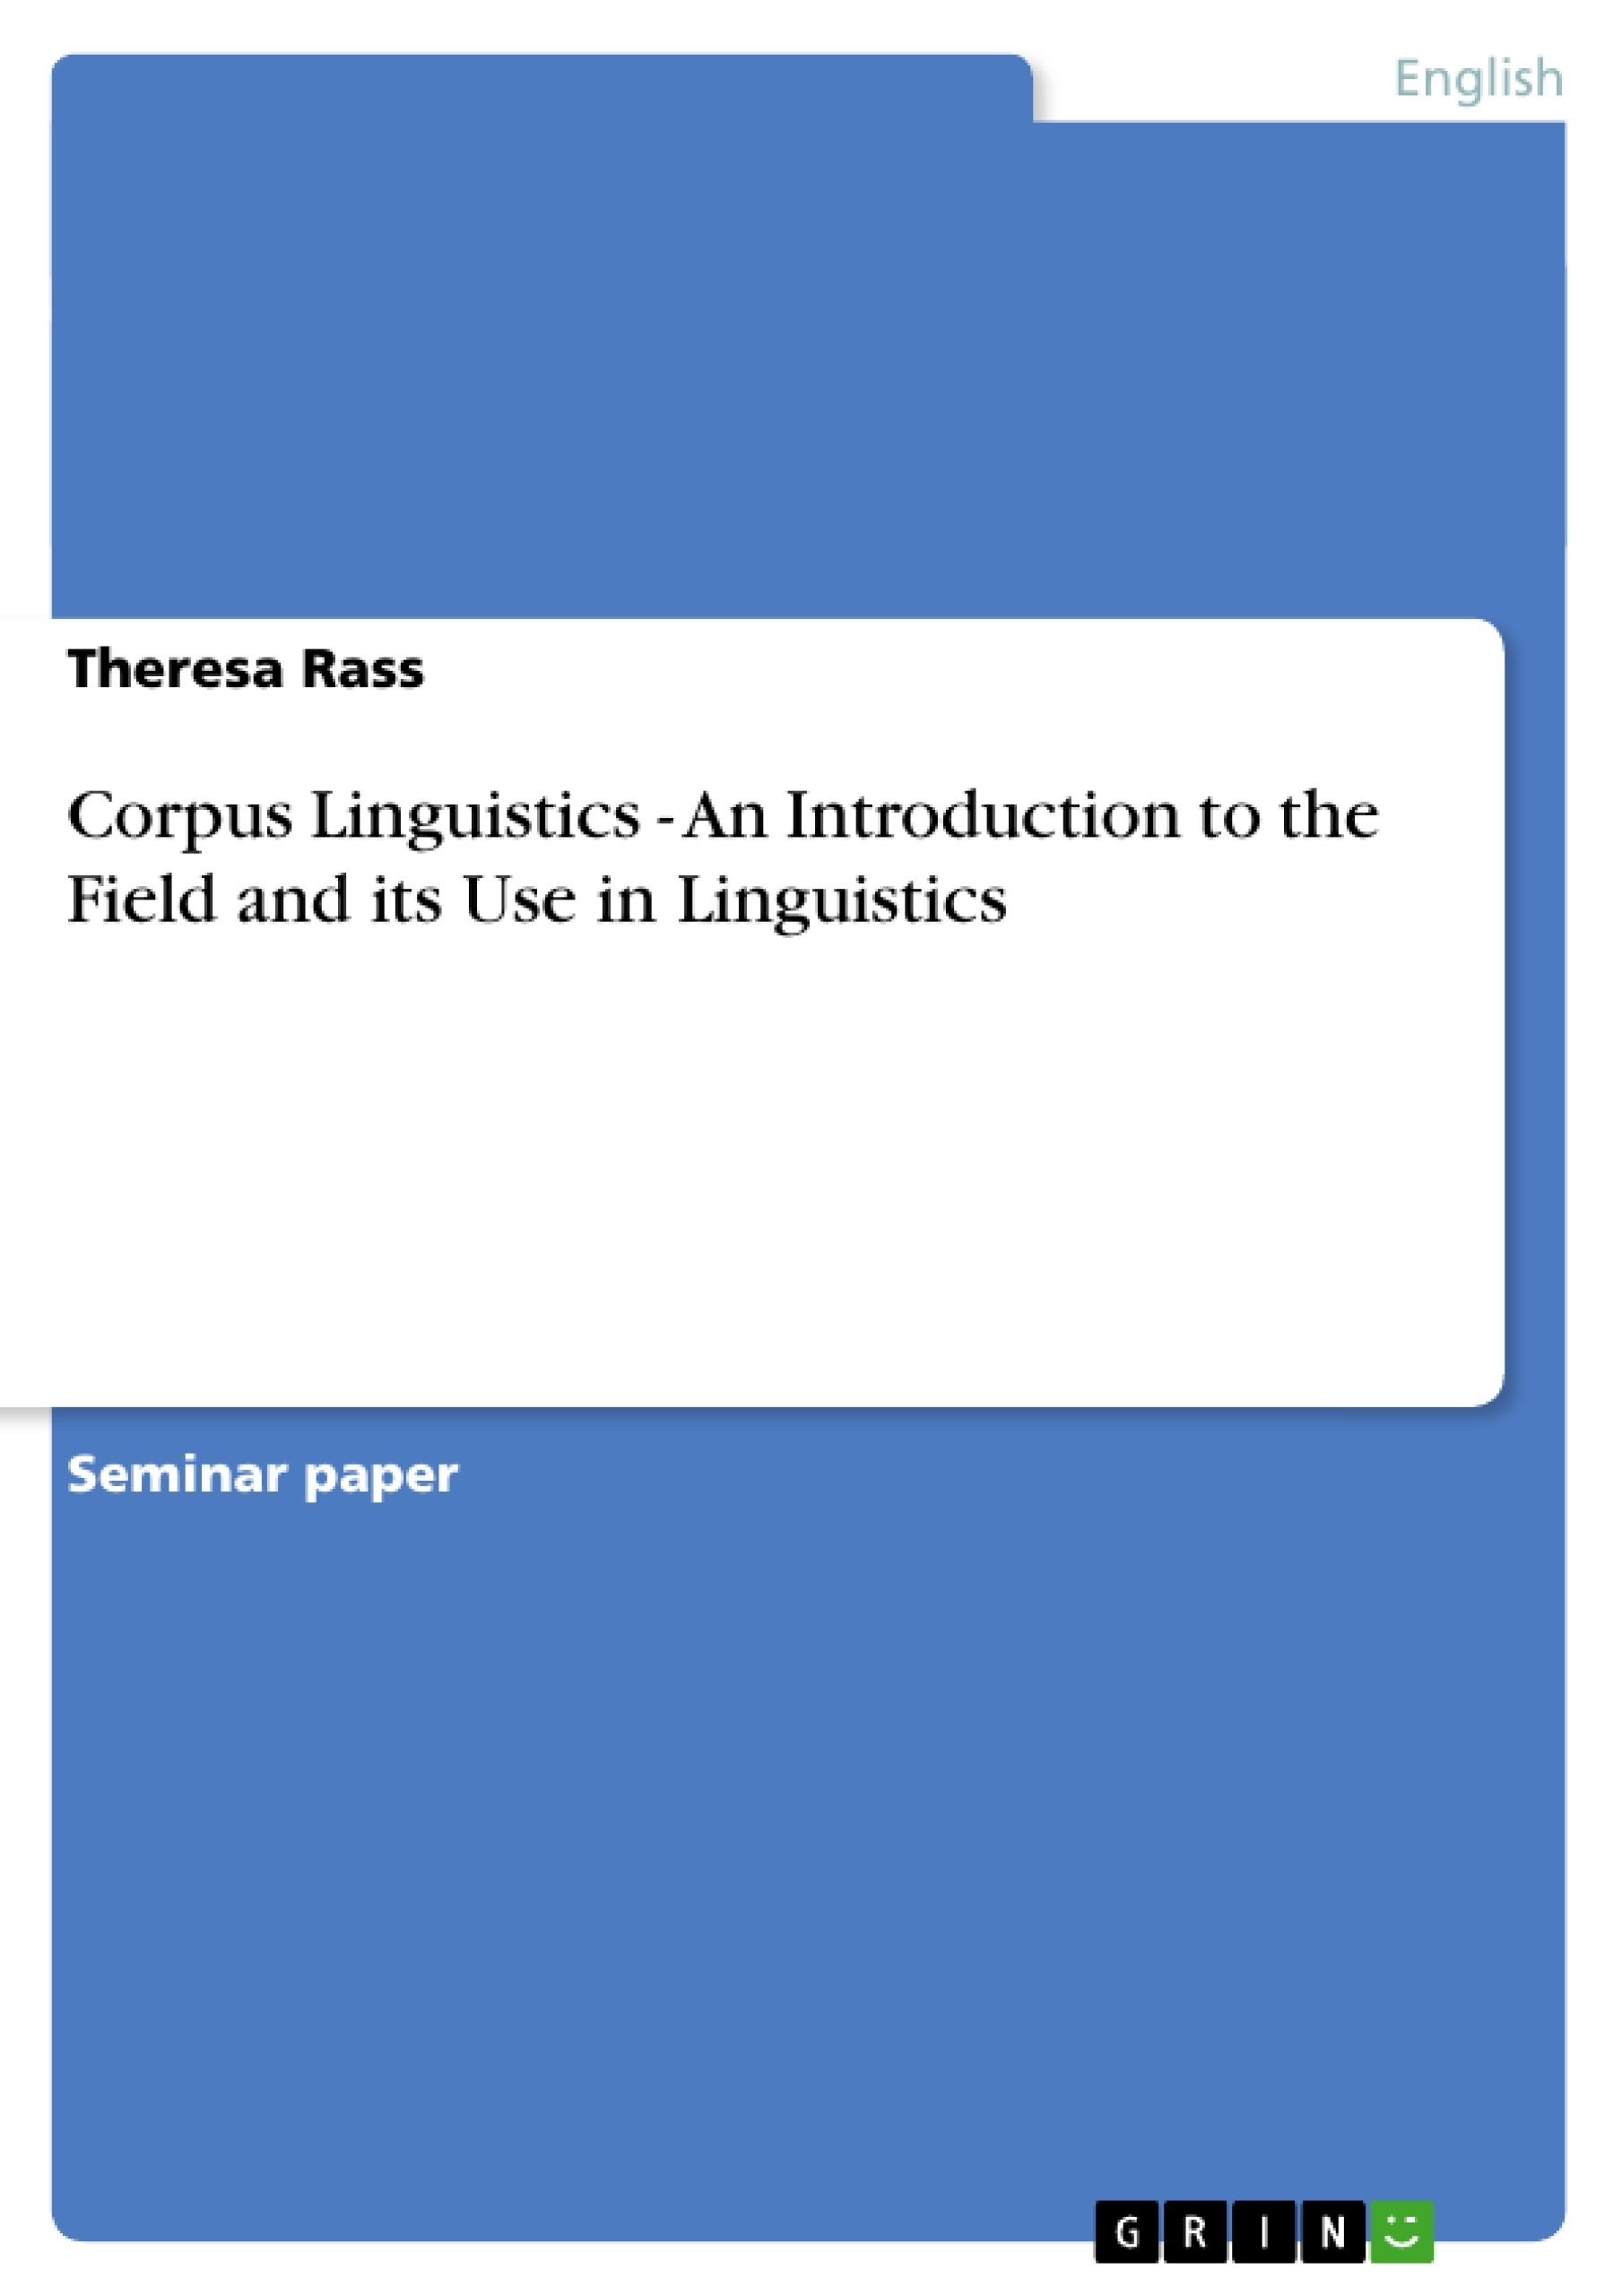 Title: Corpus Linguistics - An Introduction to the Field and its Use in Linguistics